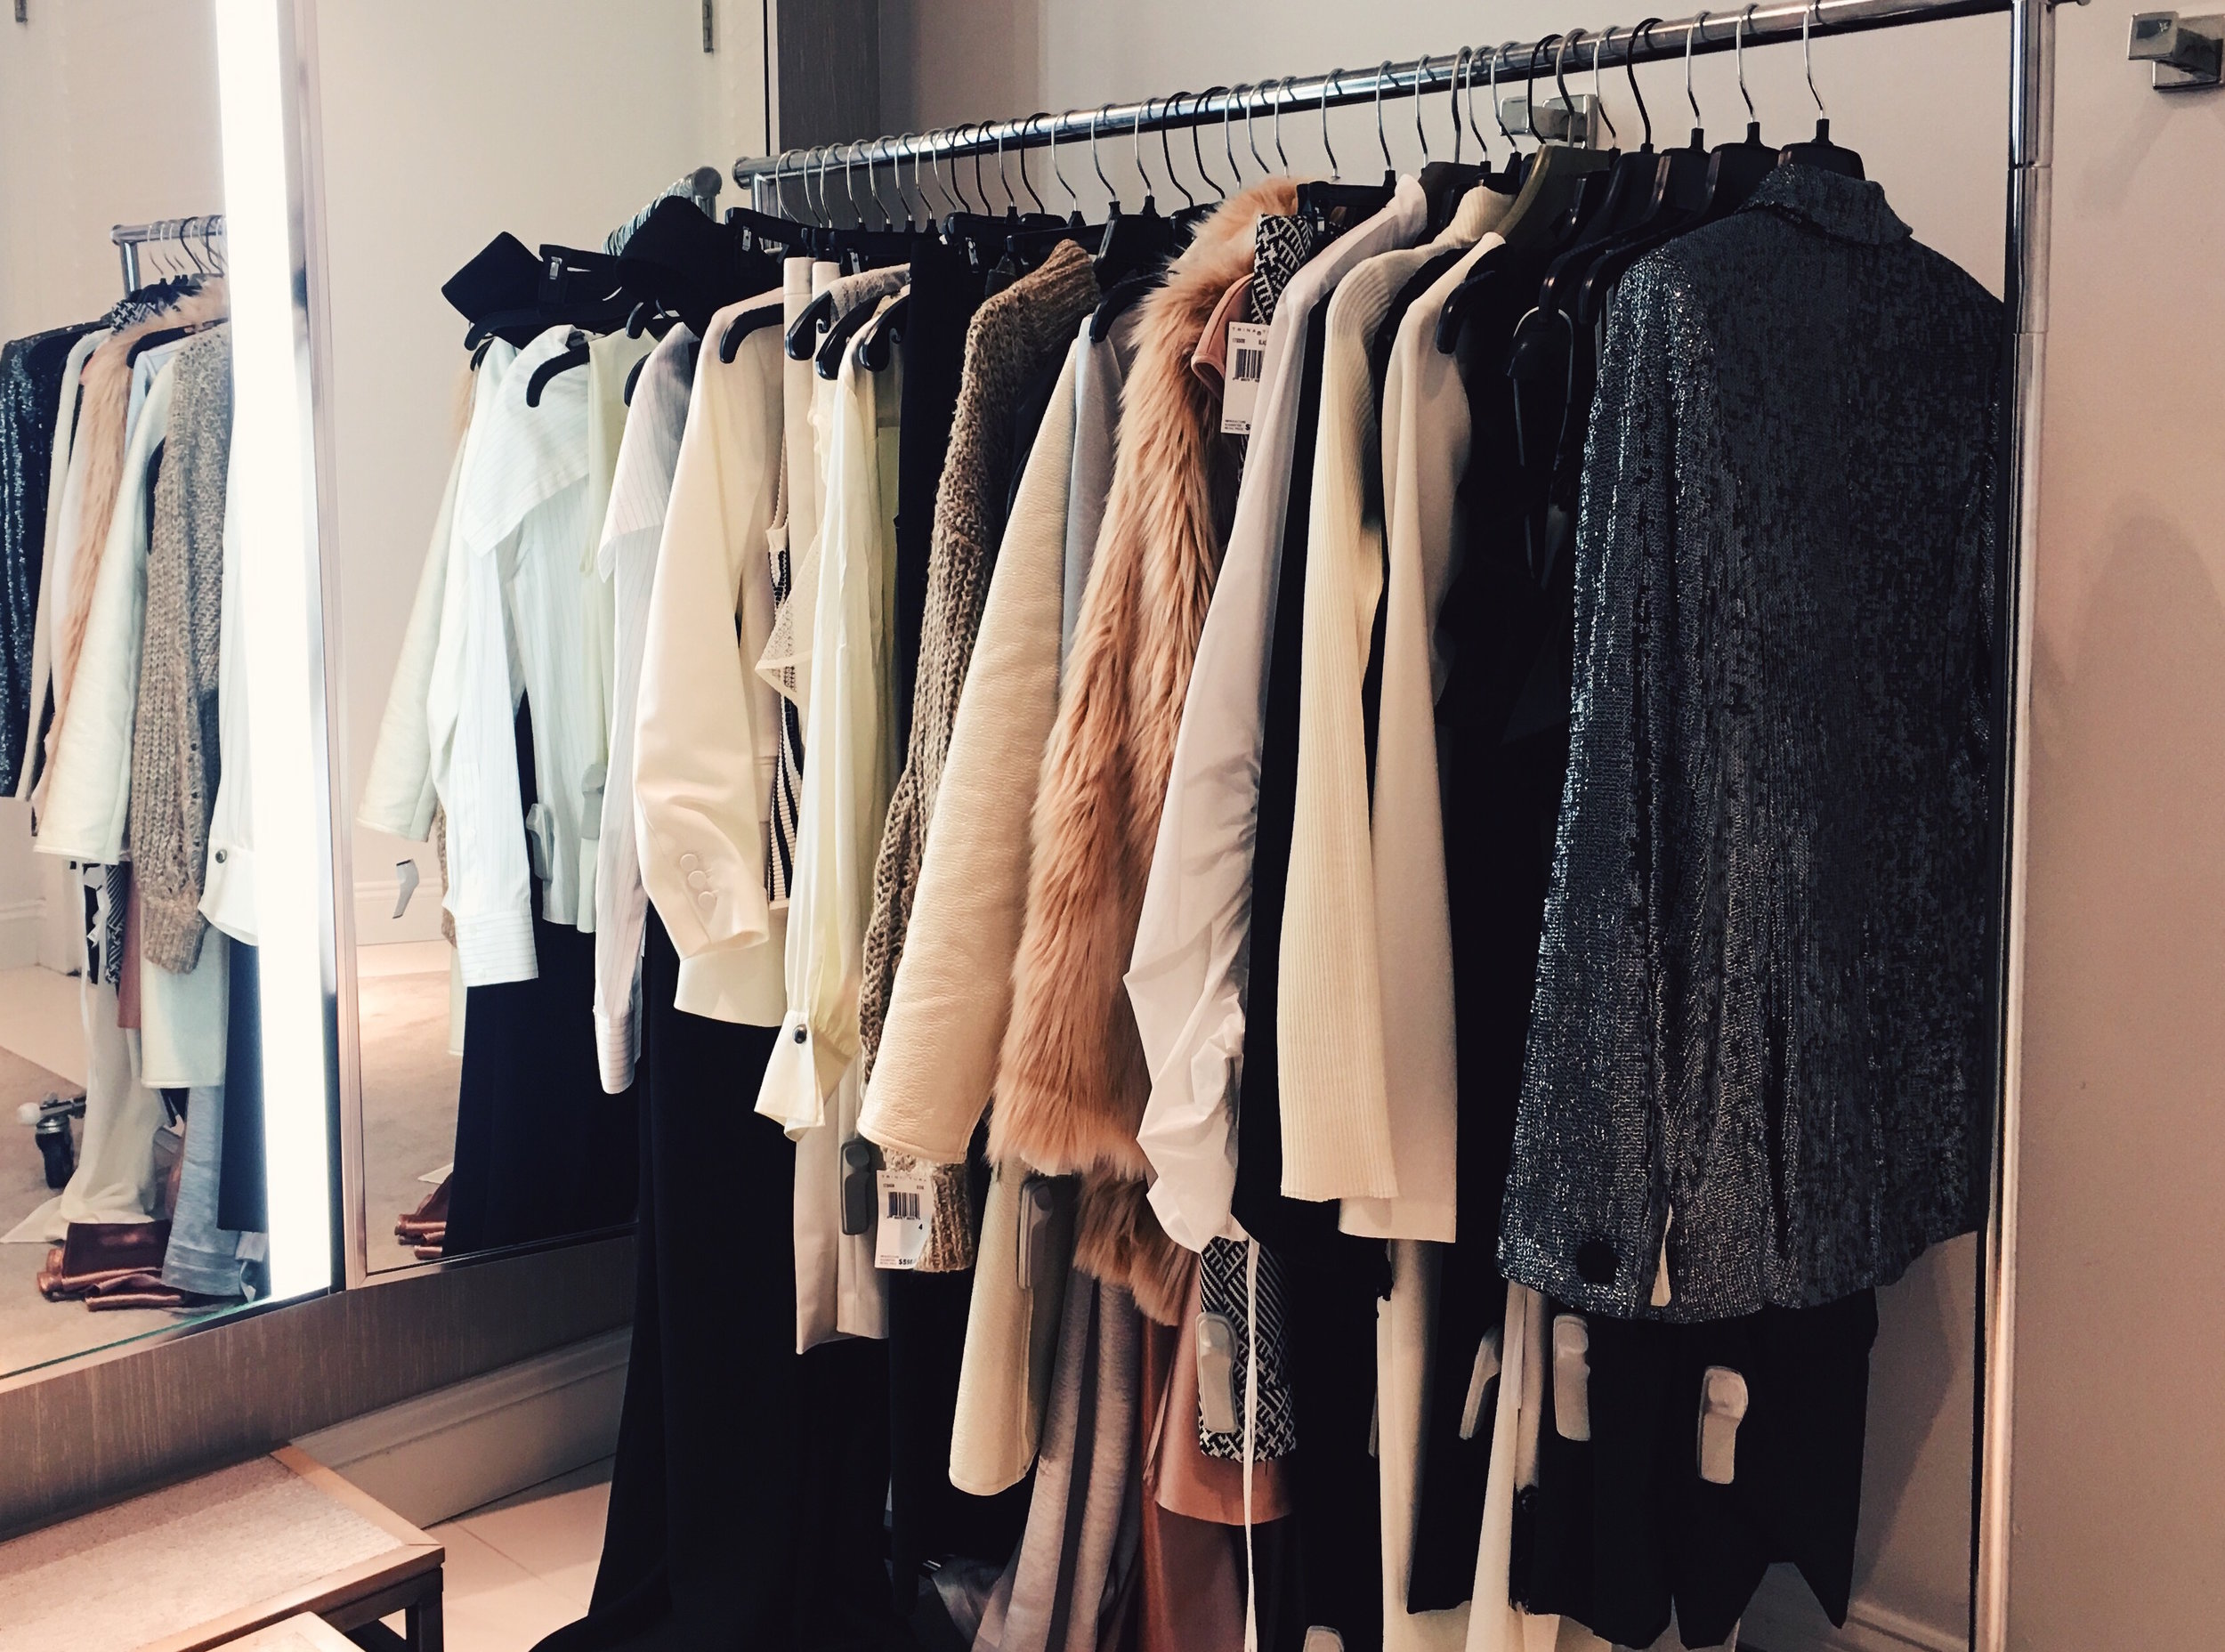 THE CLOSET PURGE: SPRING CLEANING EDITION -